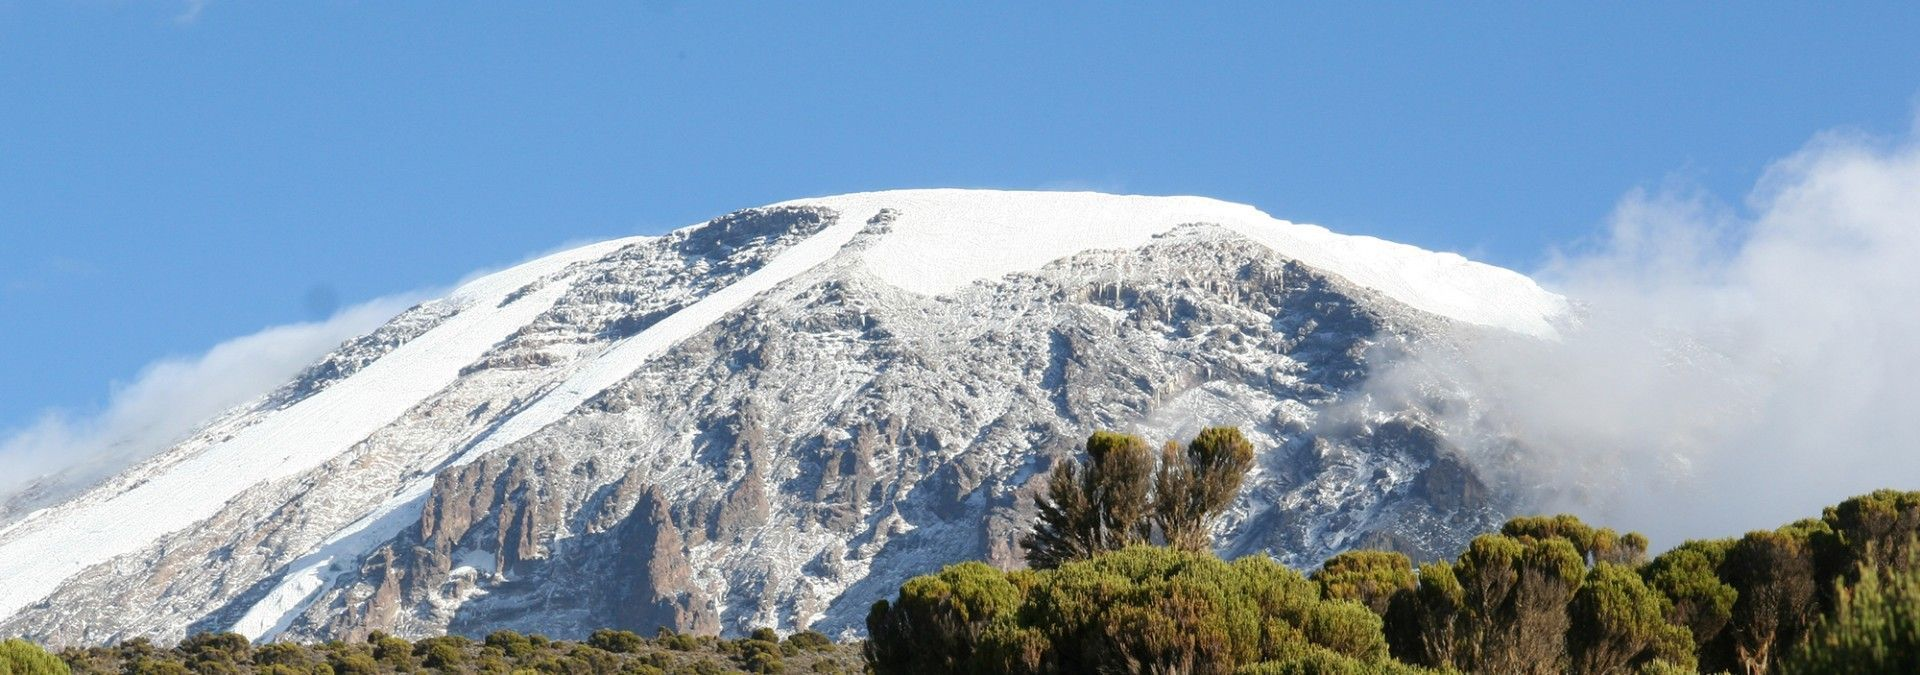 Kilimanjaro_view_from_base.jpg